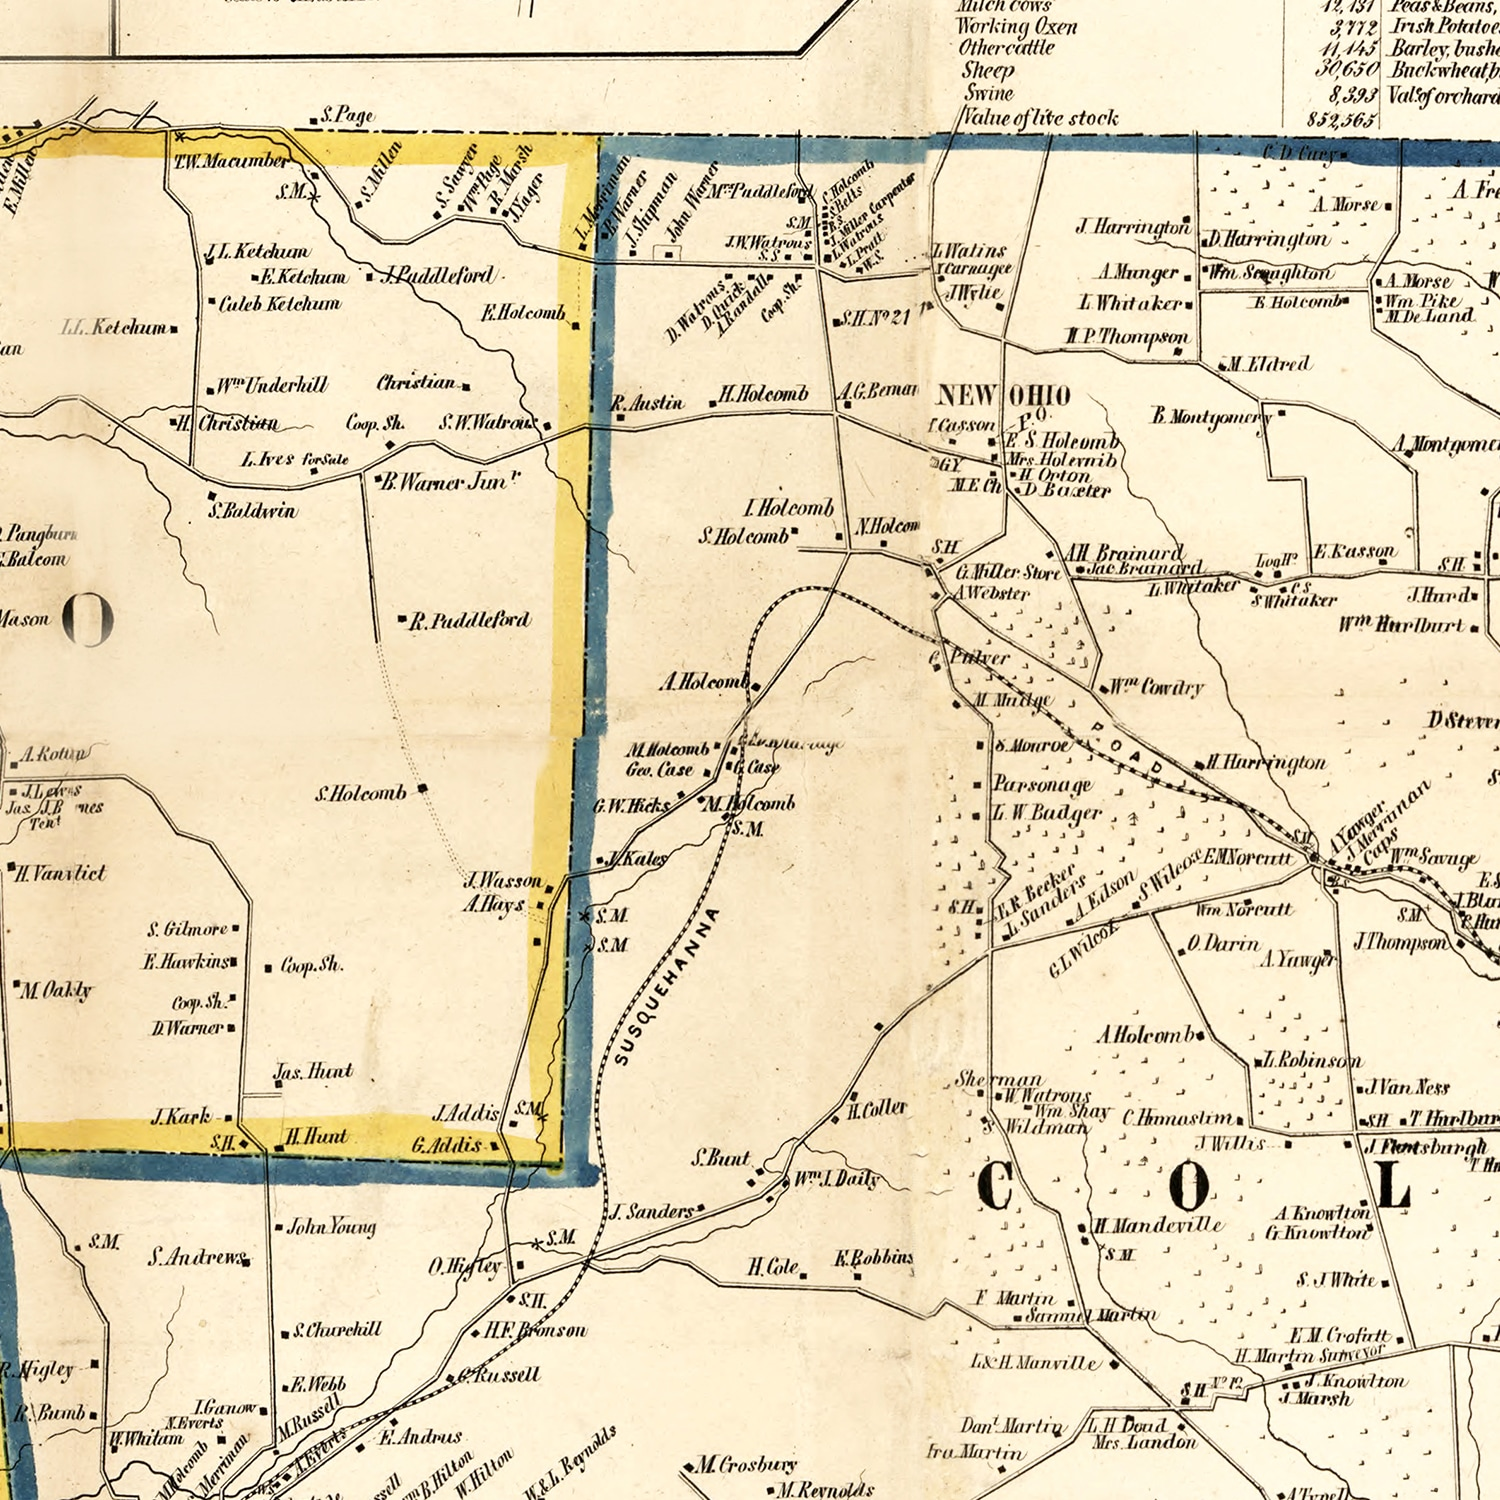 Vintage Map of Broome County, New York 1855